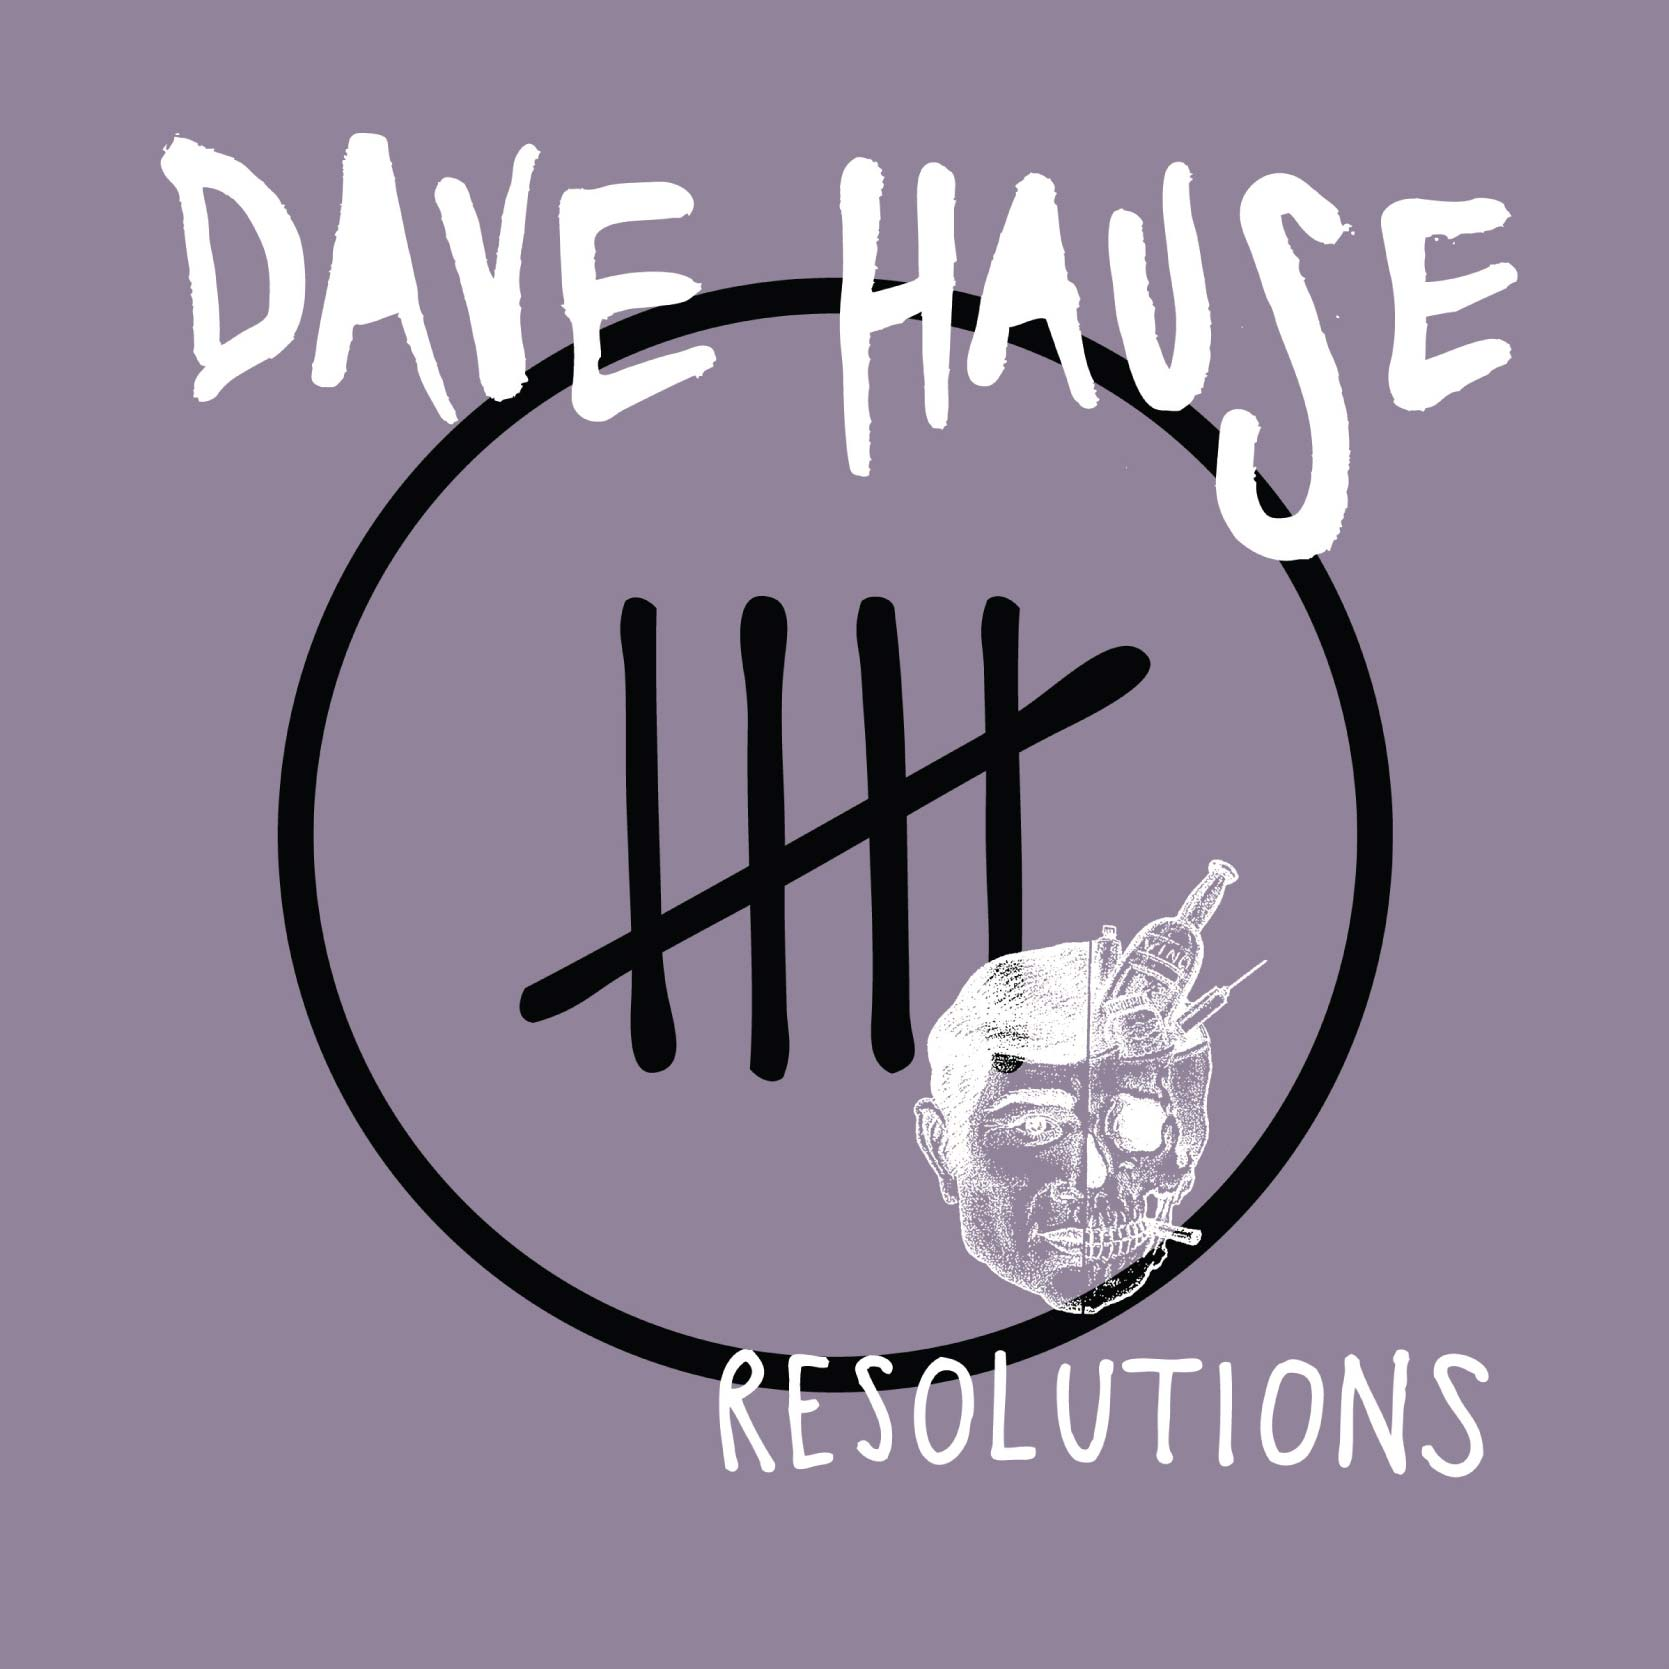 Dave Hause - Resolutions